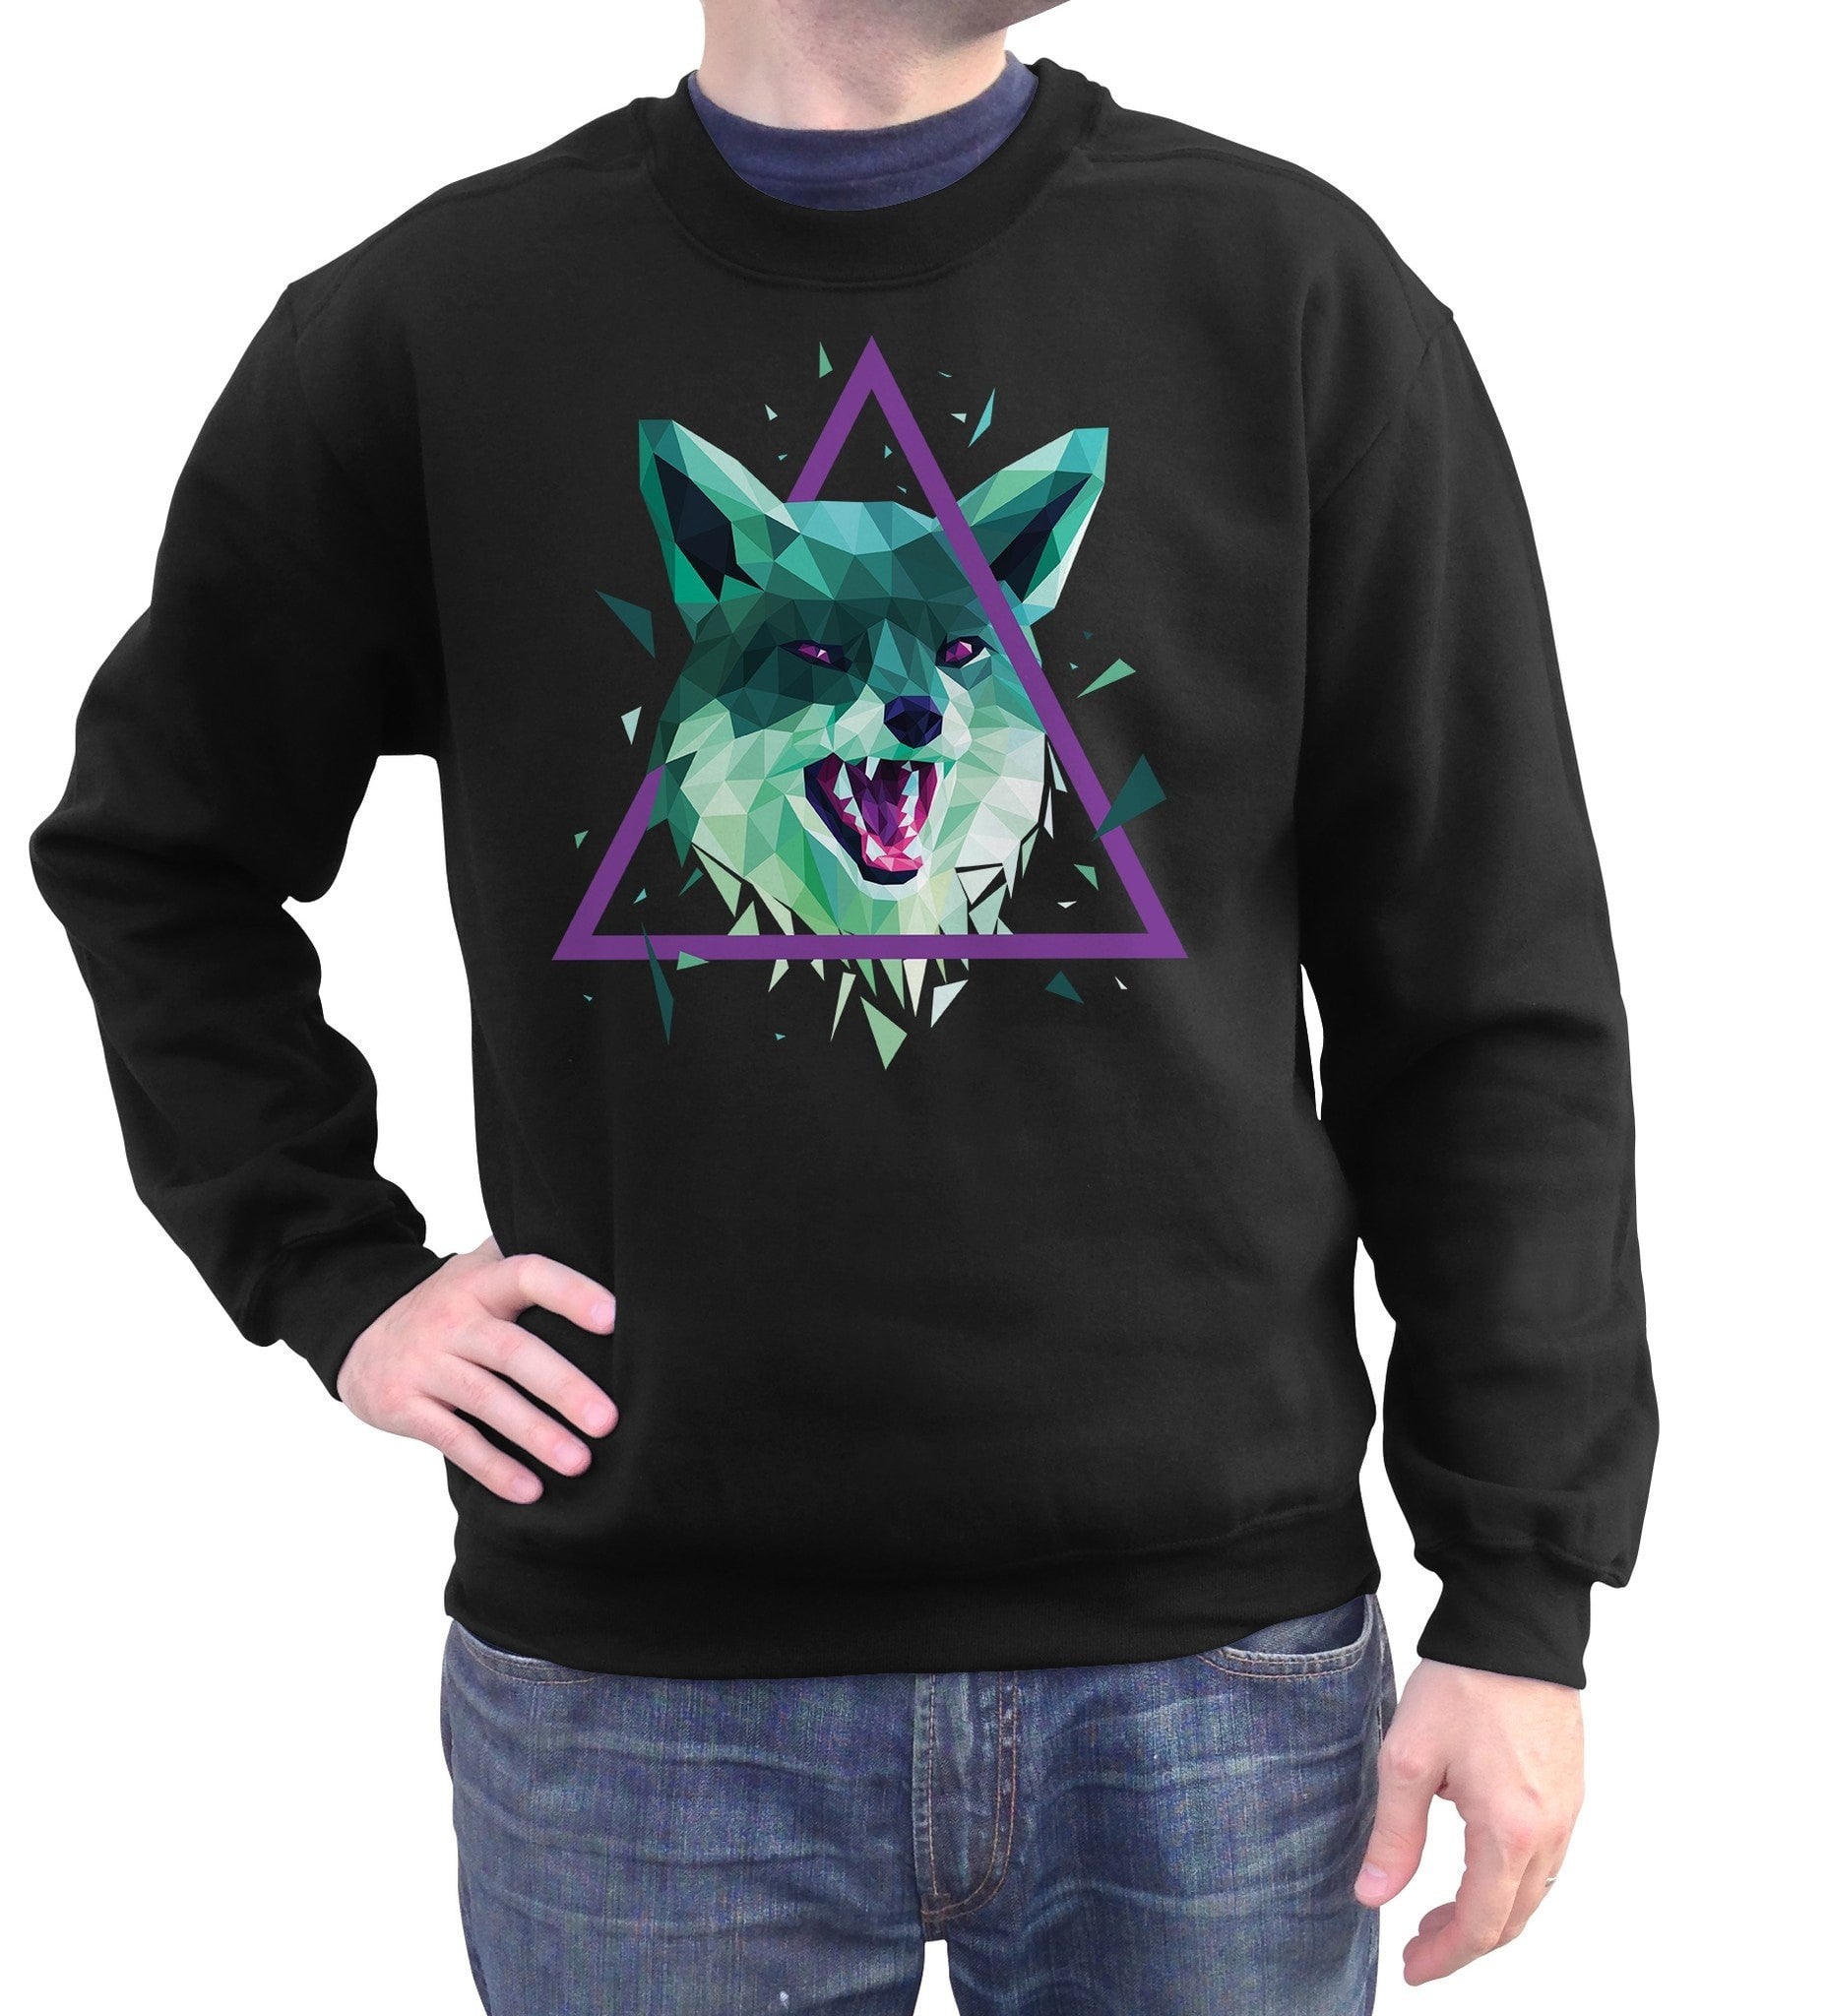 Unisex Geometric Fox Sweatshirt